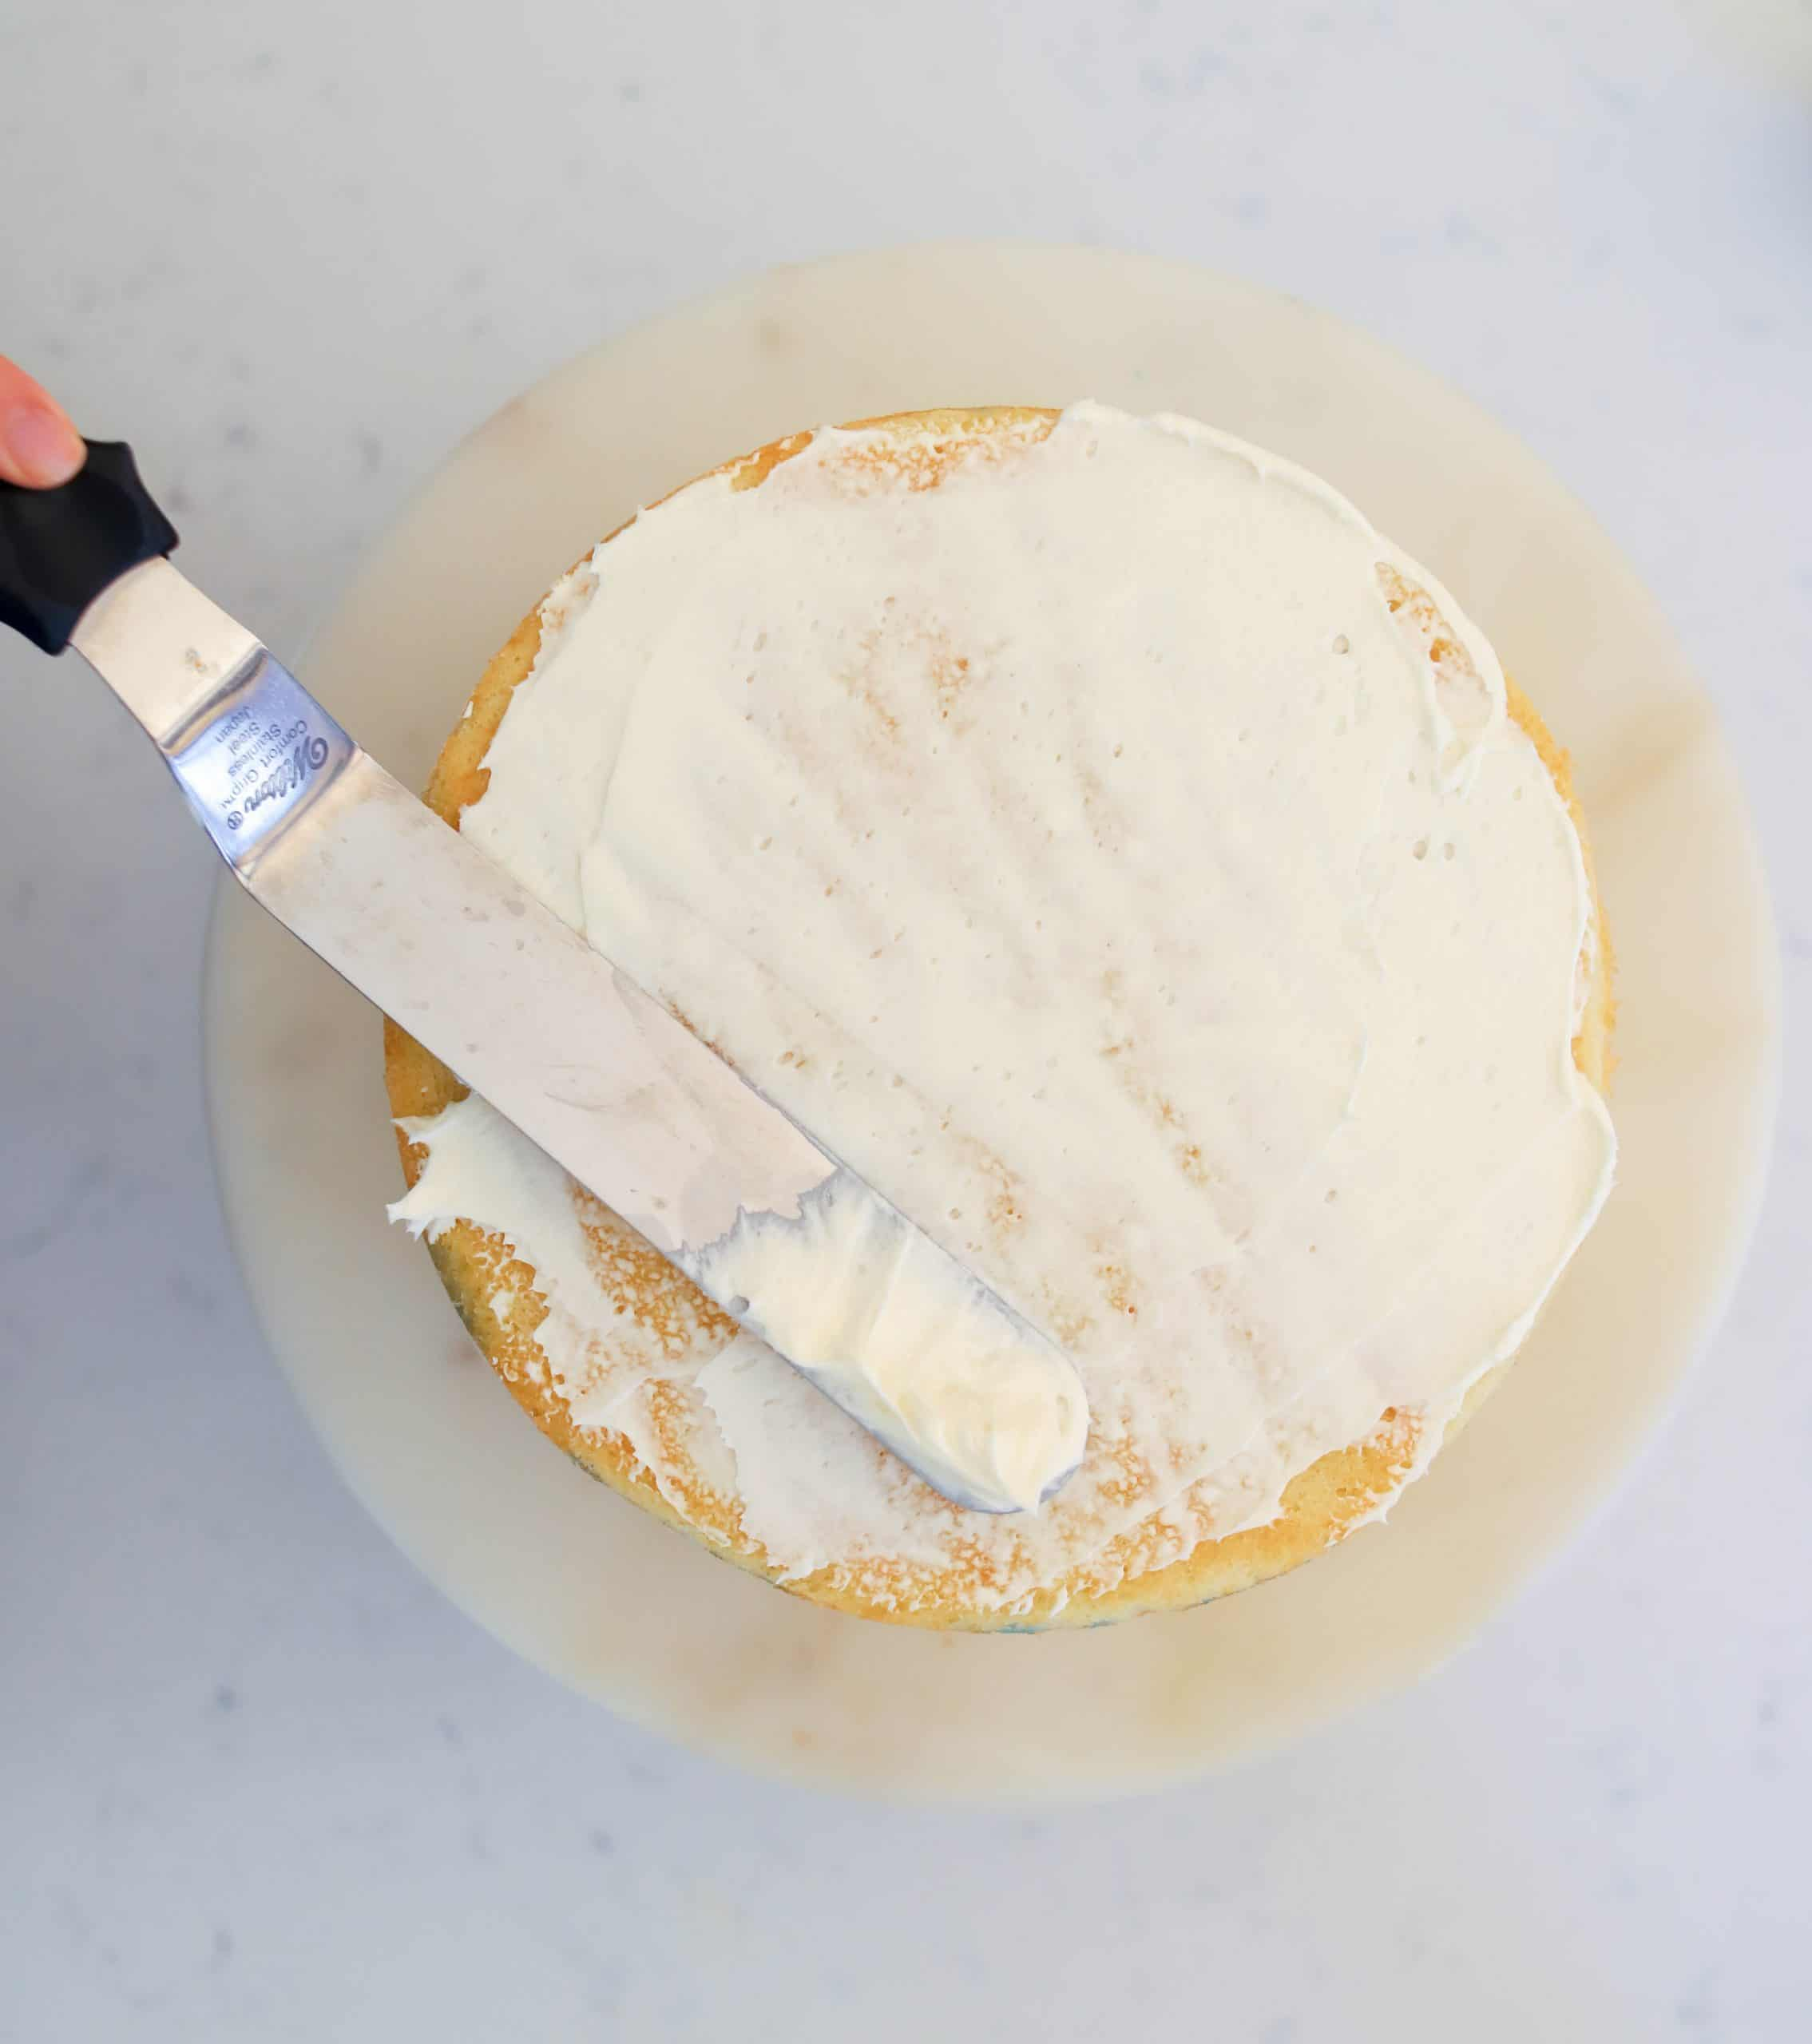 spatula crumb coating the top of a cake